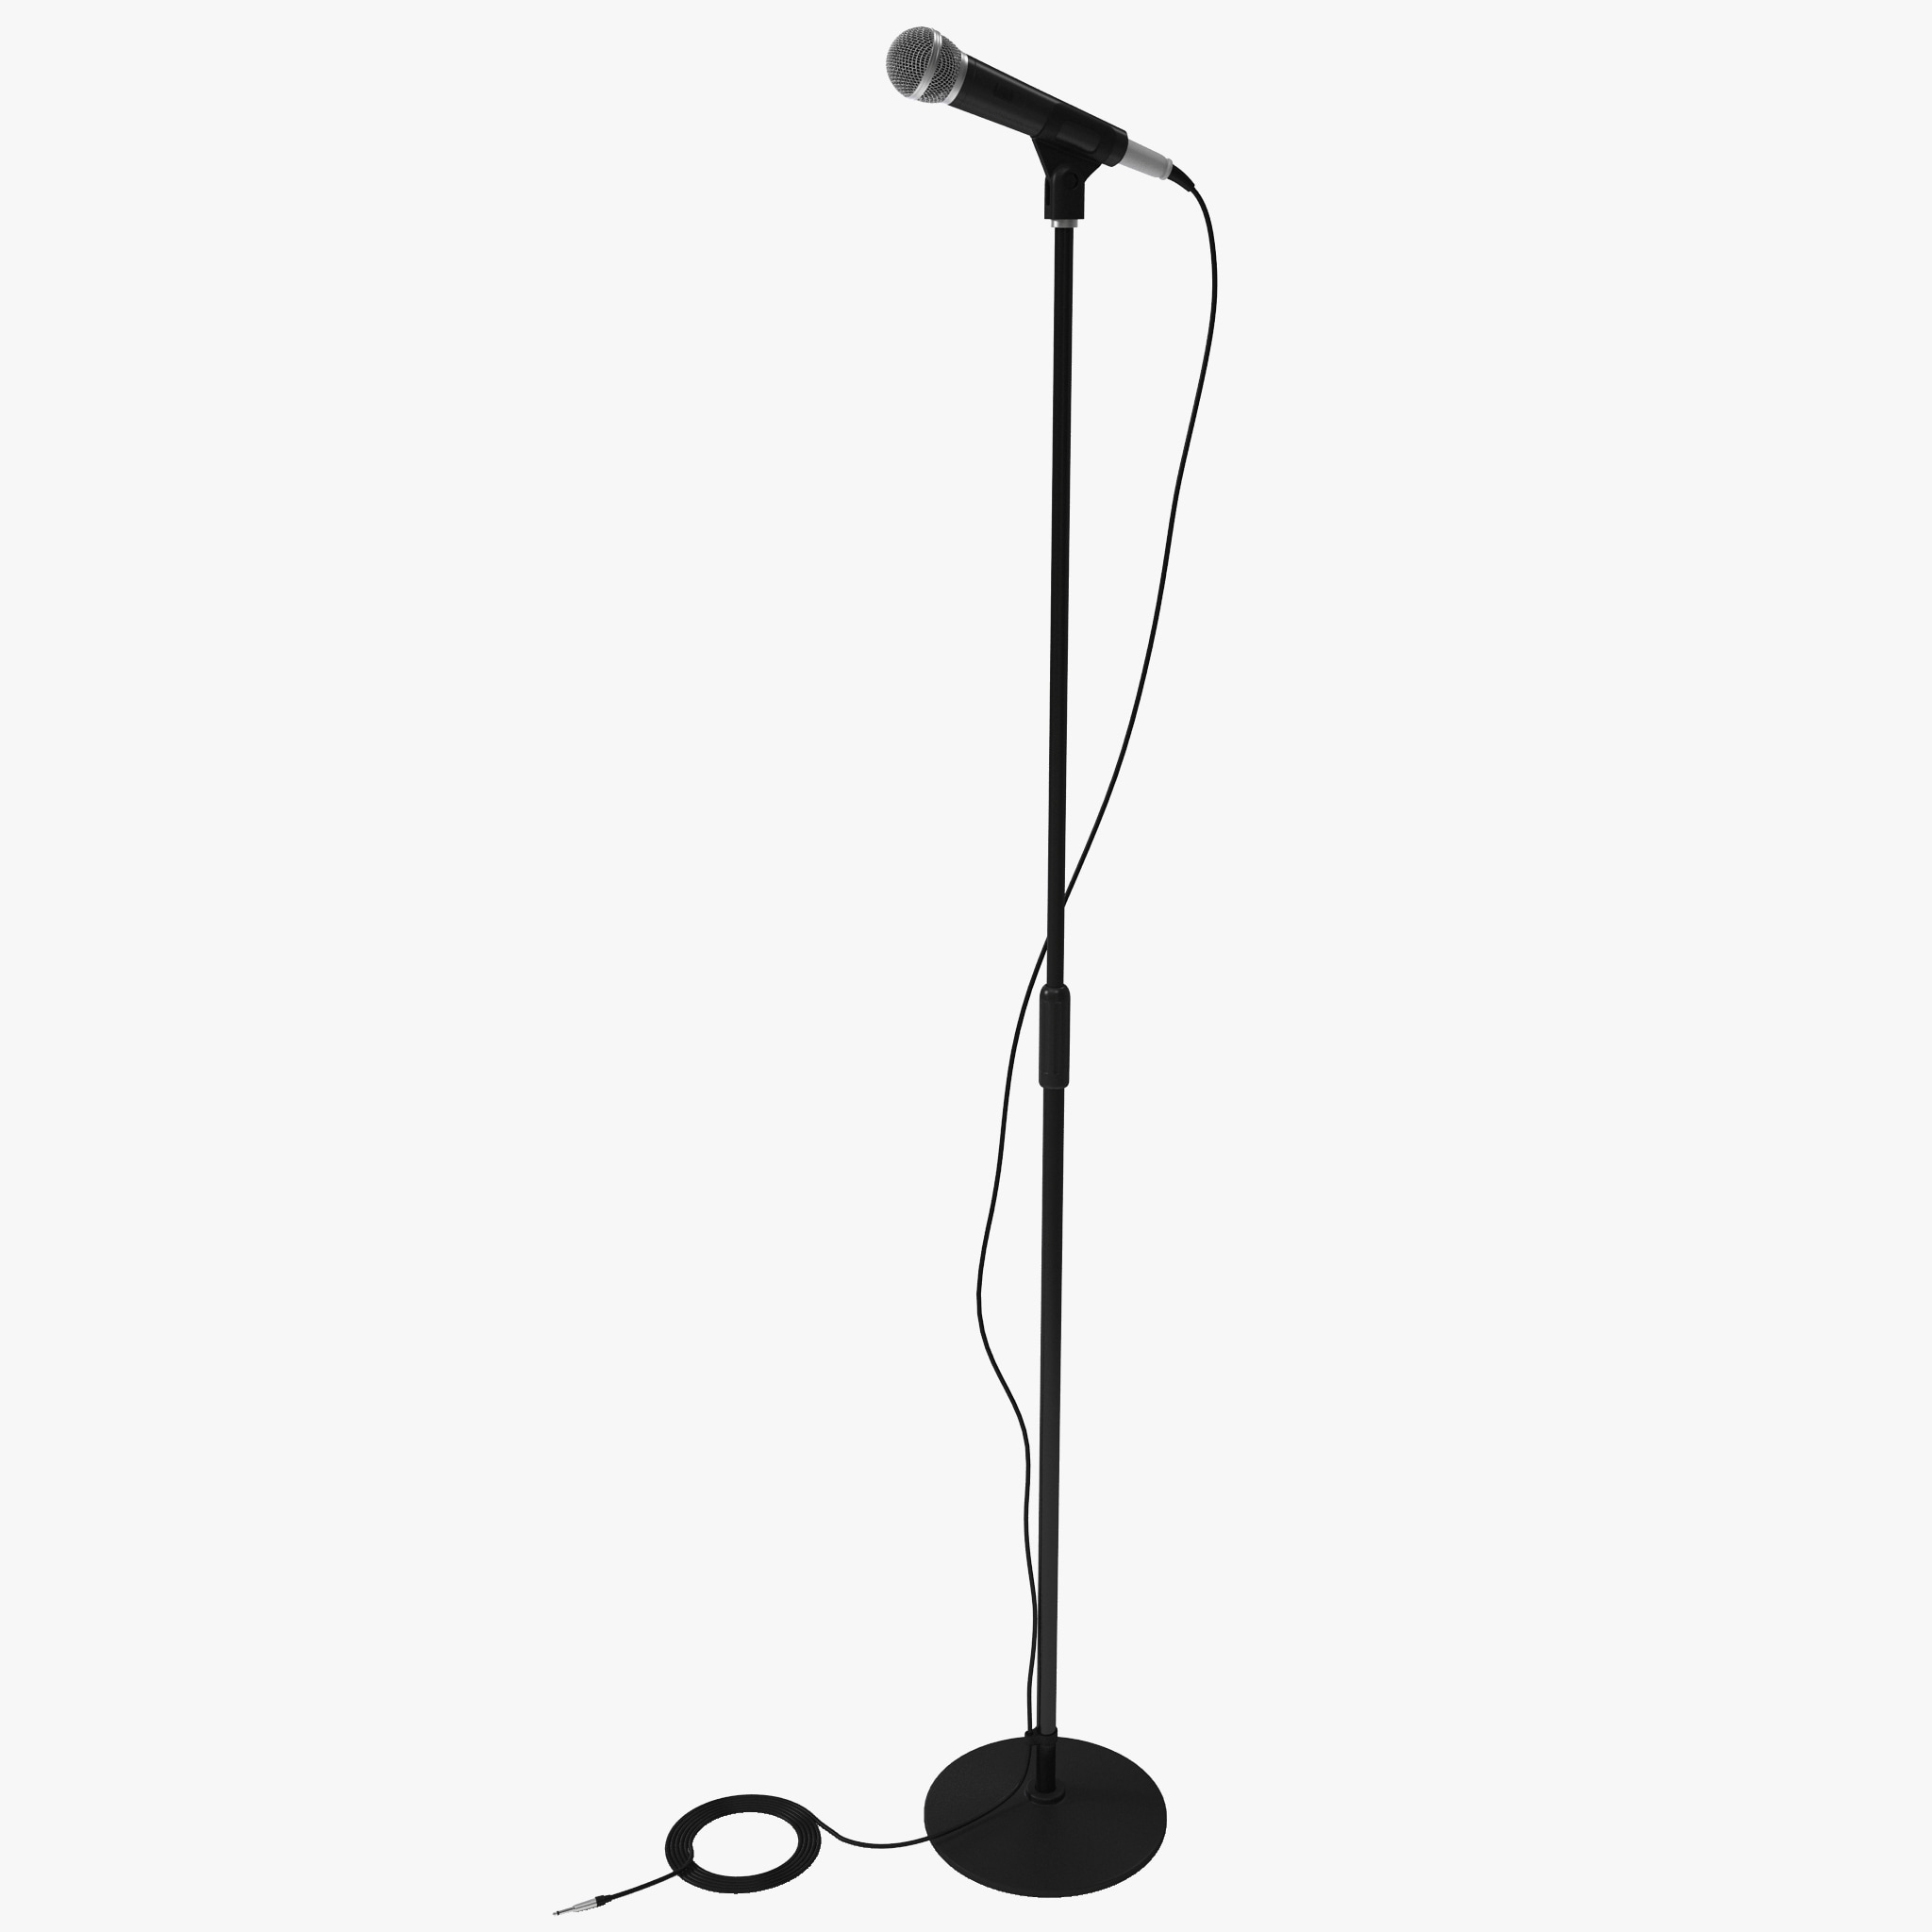 Microphone and Stand_1.jpg